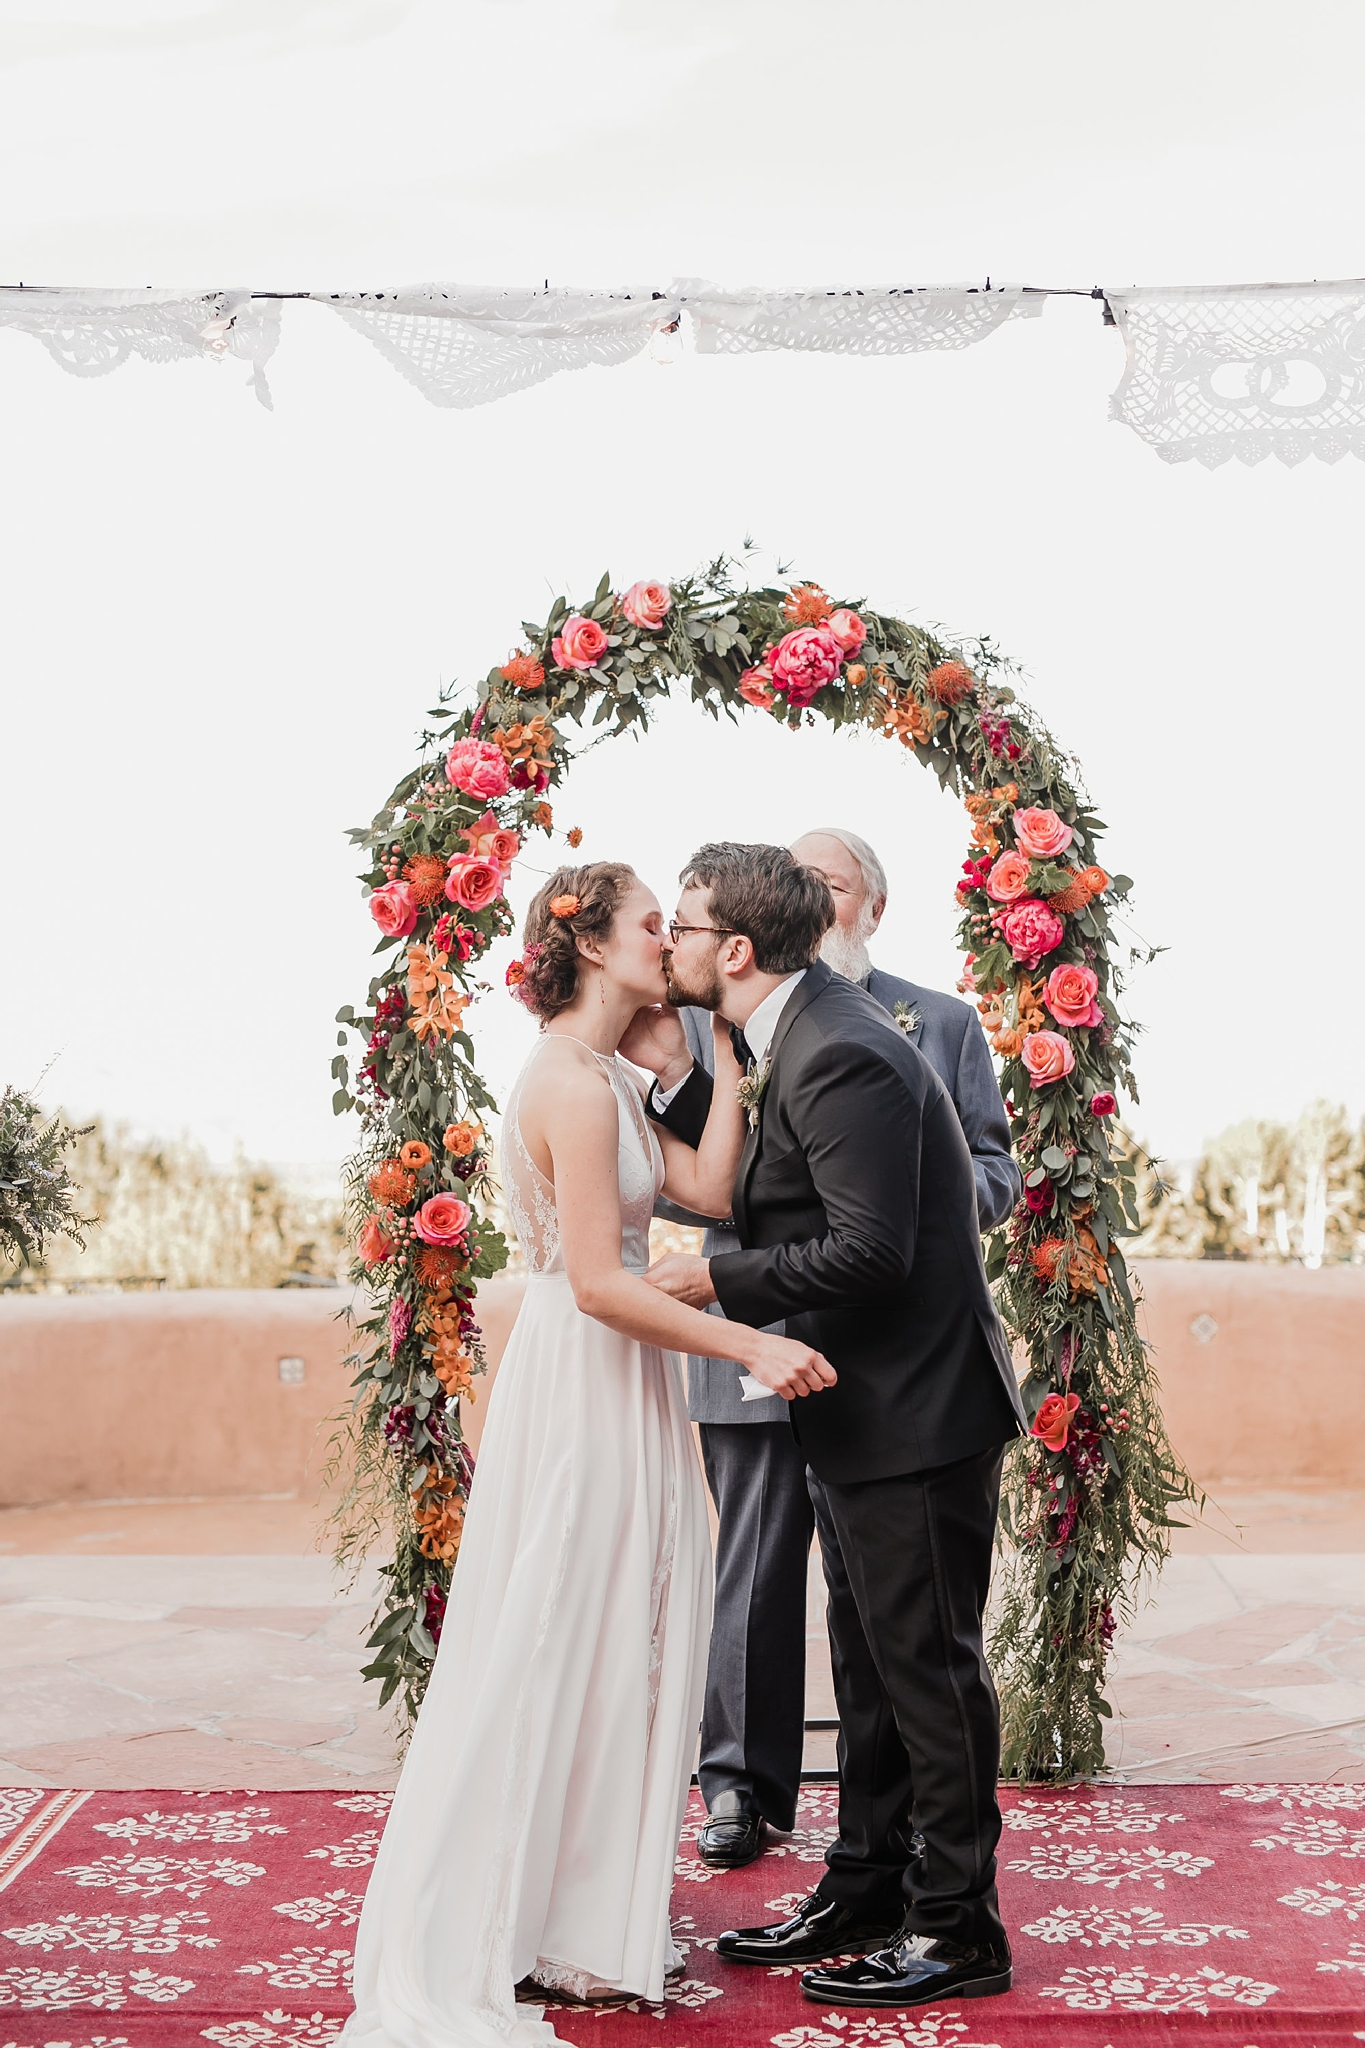 Alicia+lucia+photography+-+albuquerque+wedding+photographer+-+santa+fe+wedding+photography+-+new+mexico+wedding+photographer+-+new+mexico+wedding+-+engagement+-+santa+fe+wedding+-+hacienda+dona+andrea+-+hacienda+dona+andrea+wedding_0052.jpg